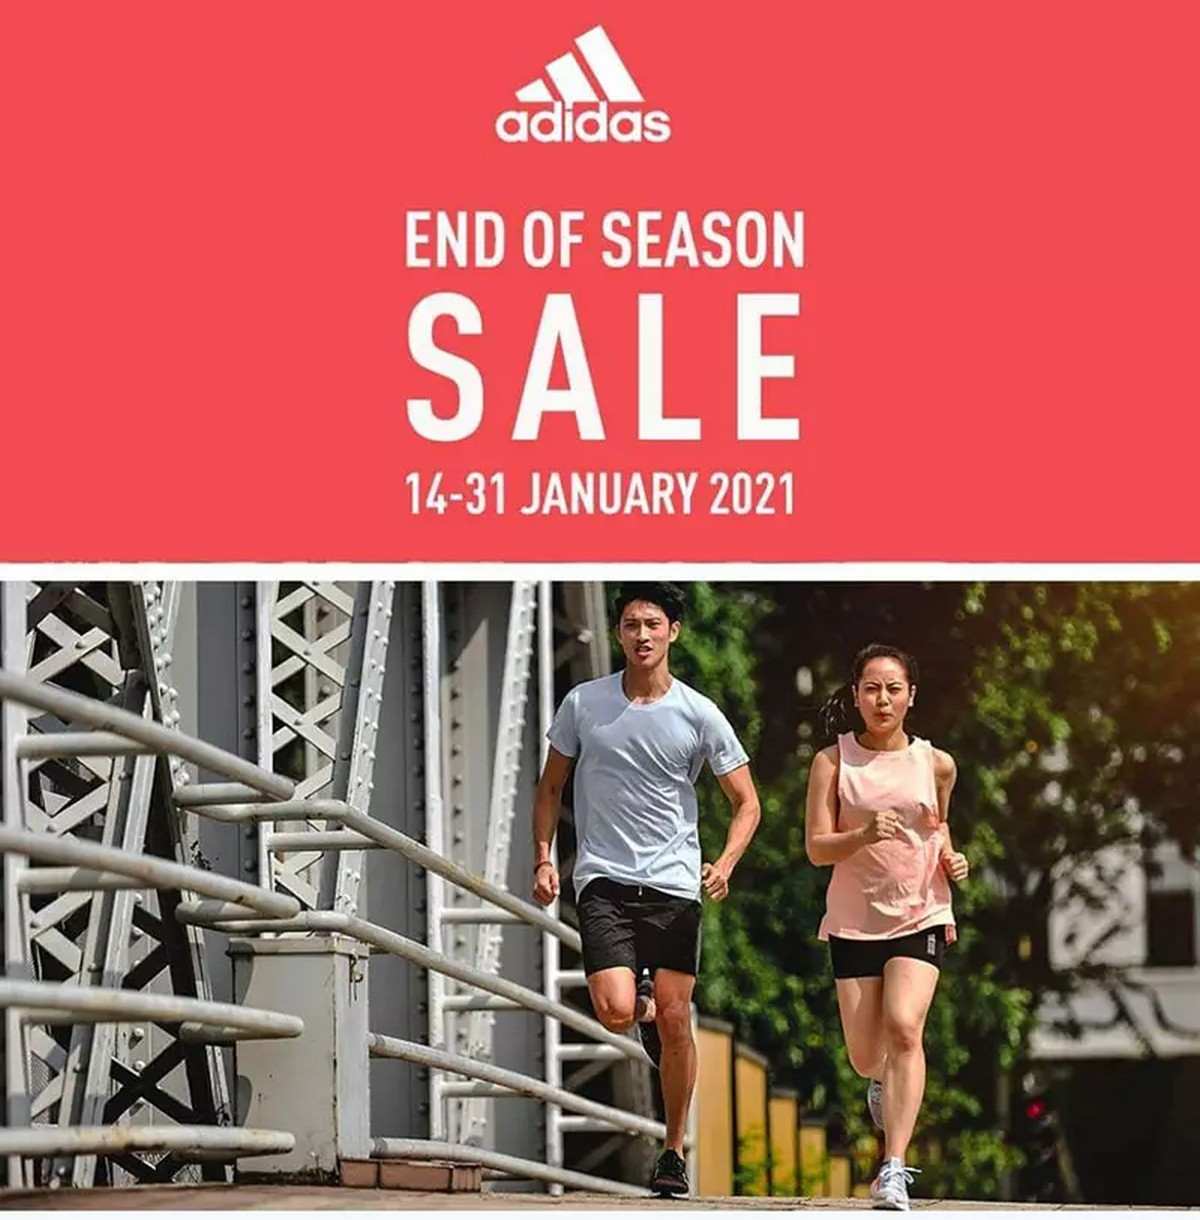 adidas-end-of-season-sale-offer-7 - LifeStyle